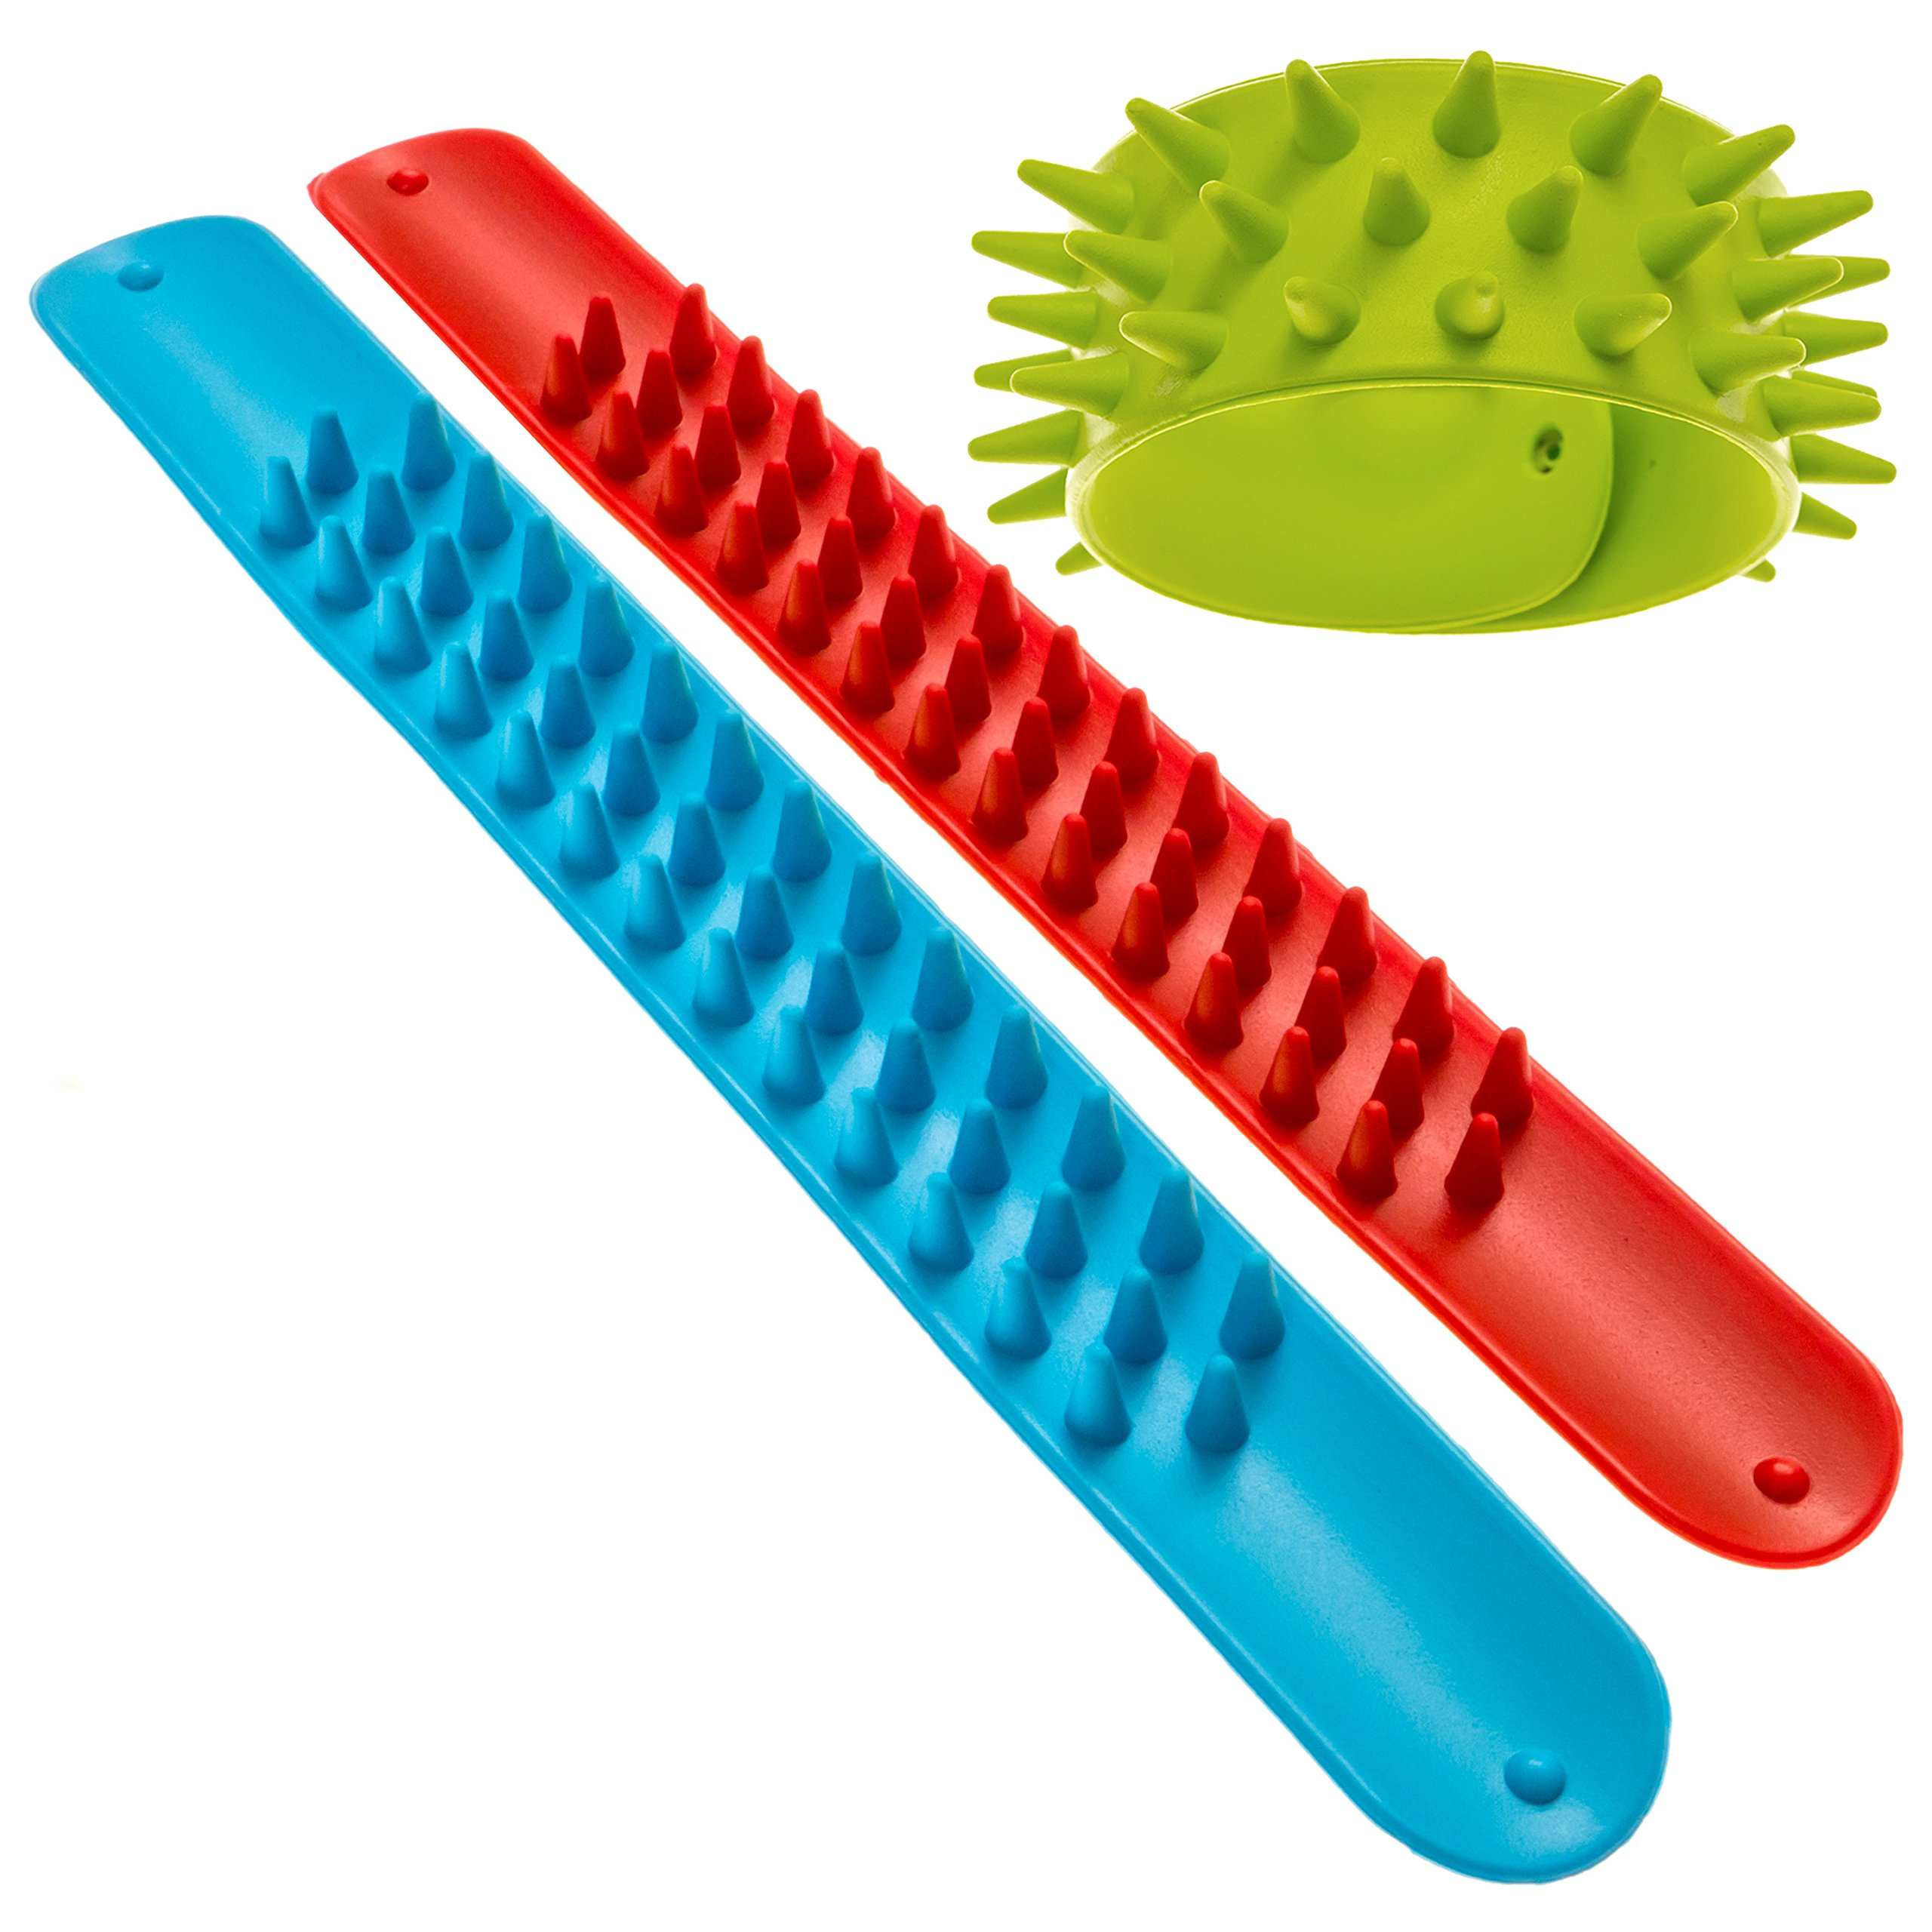 Spiky Slap Bracelets / Slap Bands (3 Pack) - Great Sensory Toys / Fidget Toys - BPA/Phthalate/Latex-Free by Impresa Products (Image #1)